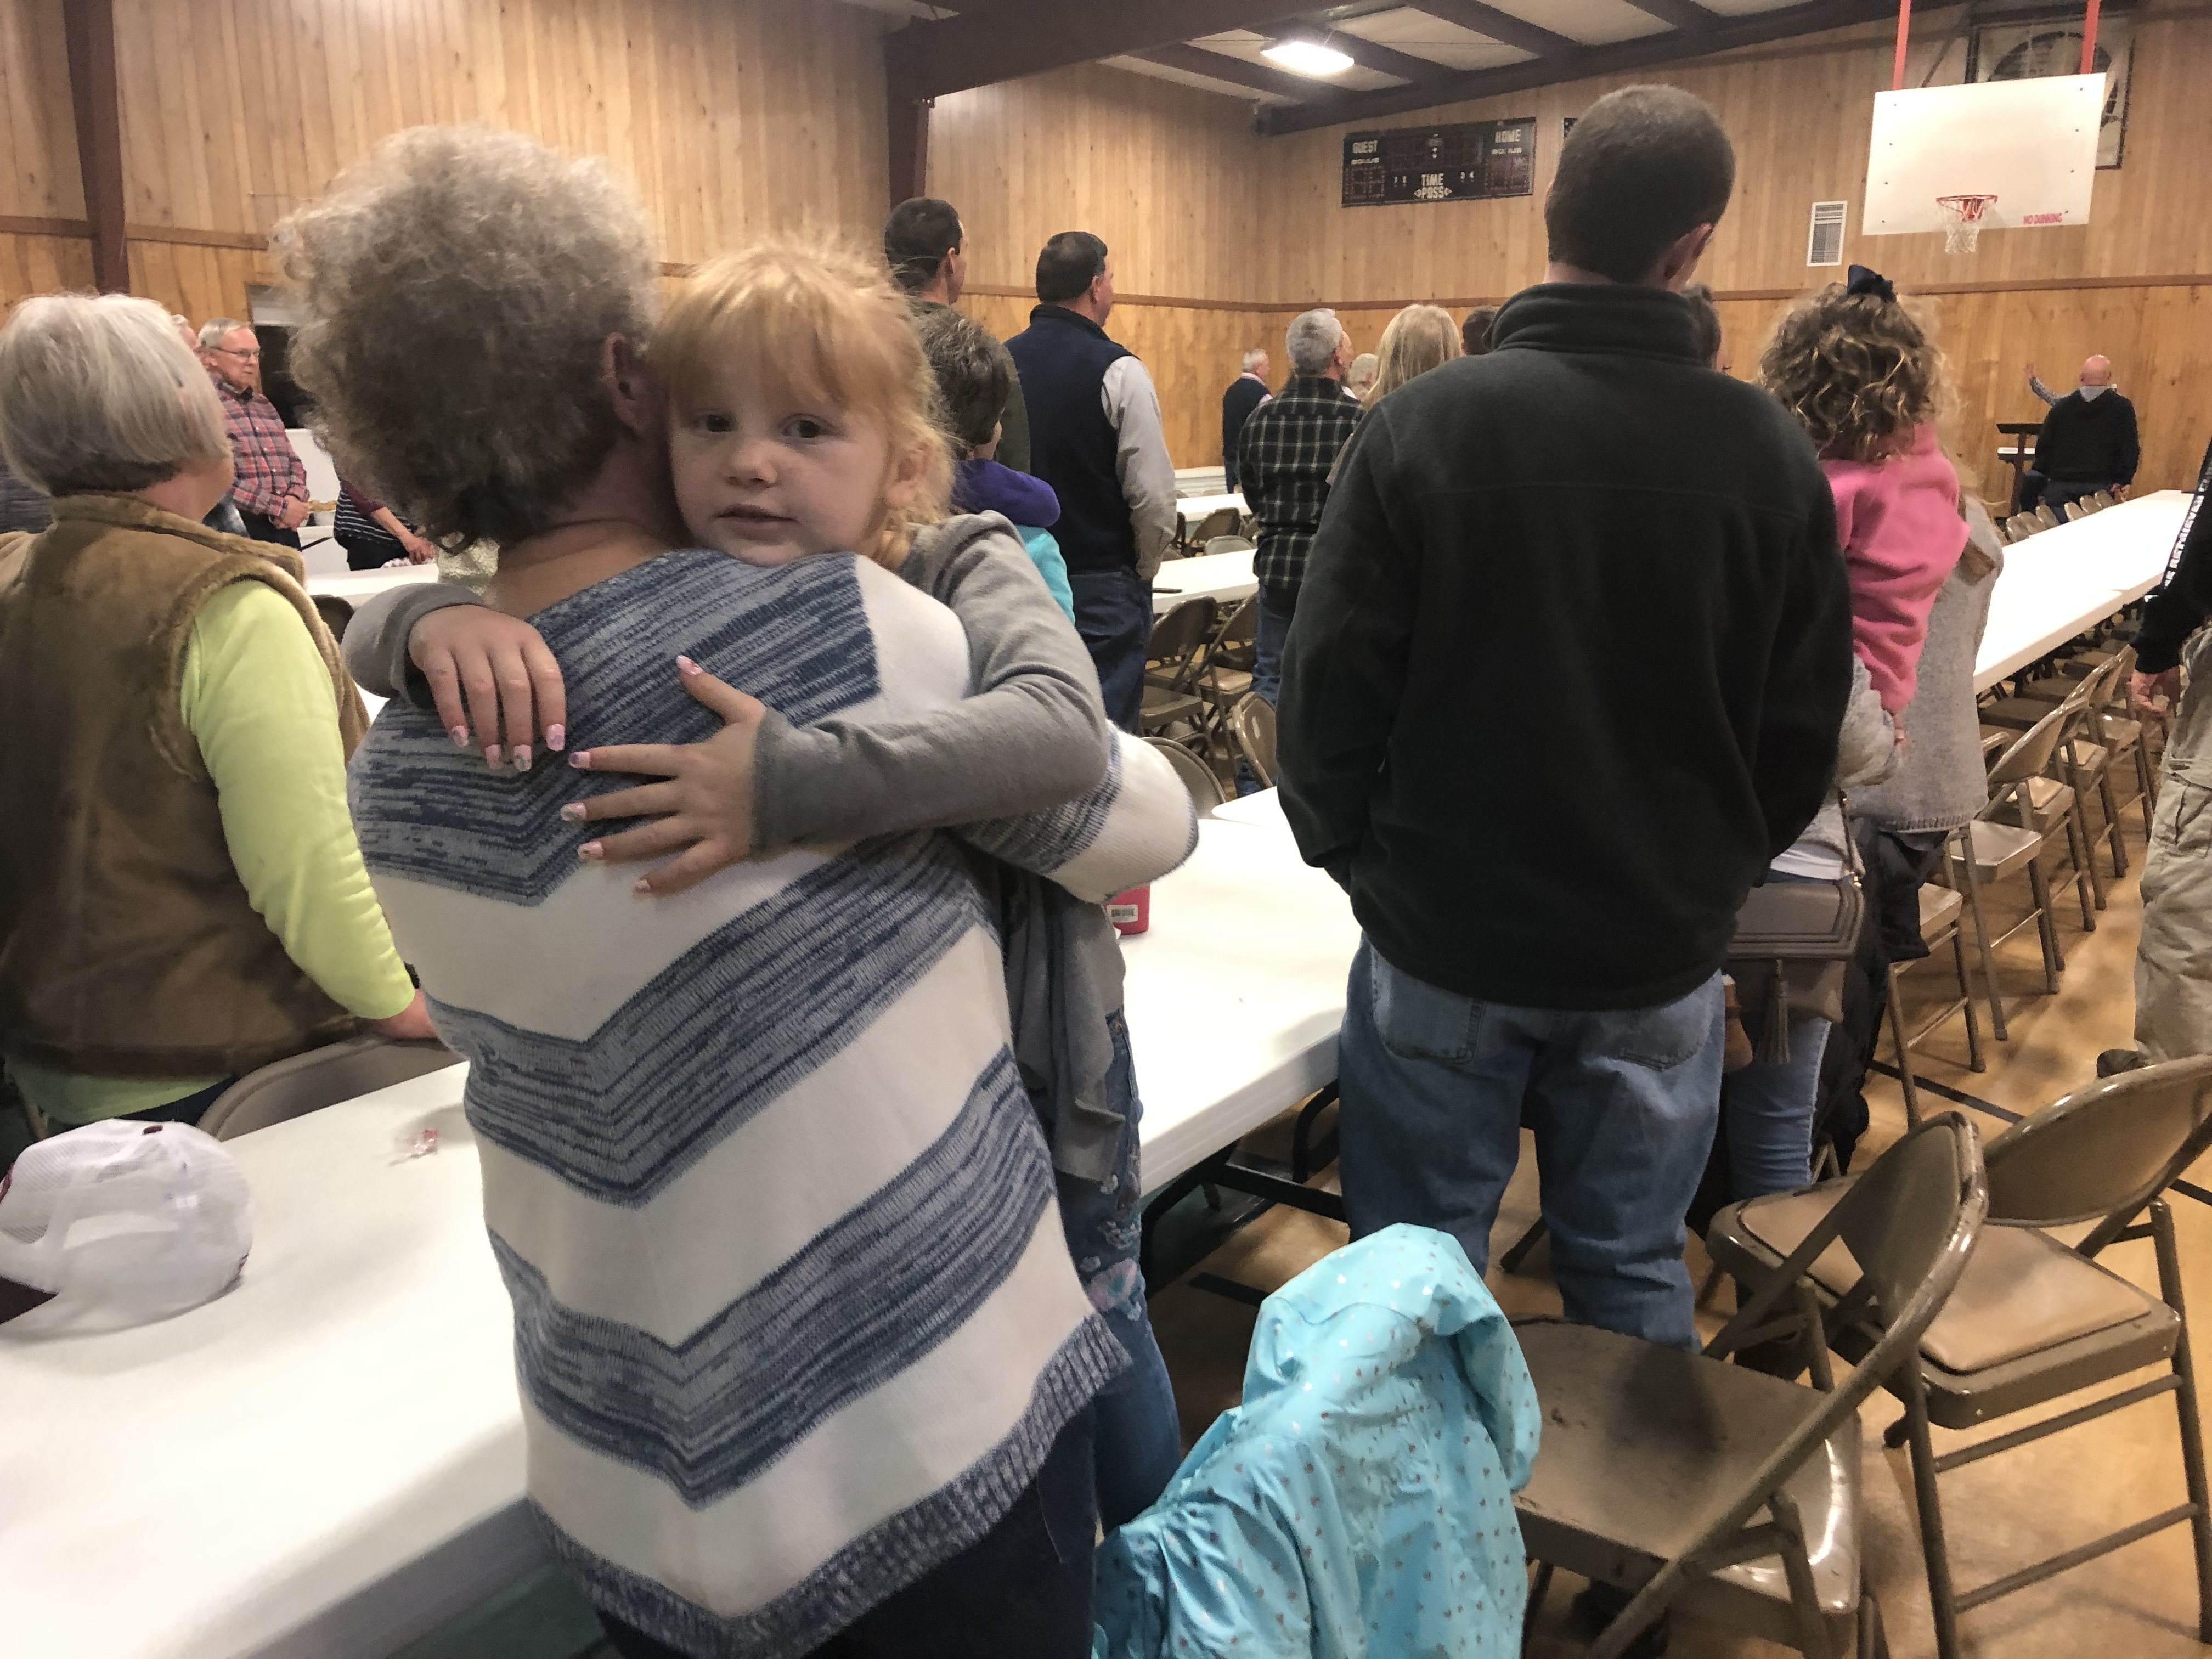 <div class='meta'><div class='origin-logo' data-origin='WTVD'></div><span class='caption-text' data-credit='Akilah Davis'>Celebration held Friday night at New Haven Church for Casey Hathaway.</span></div>